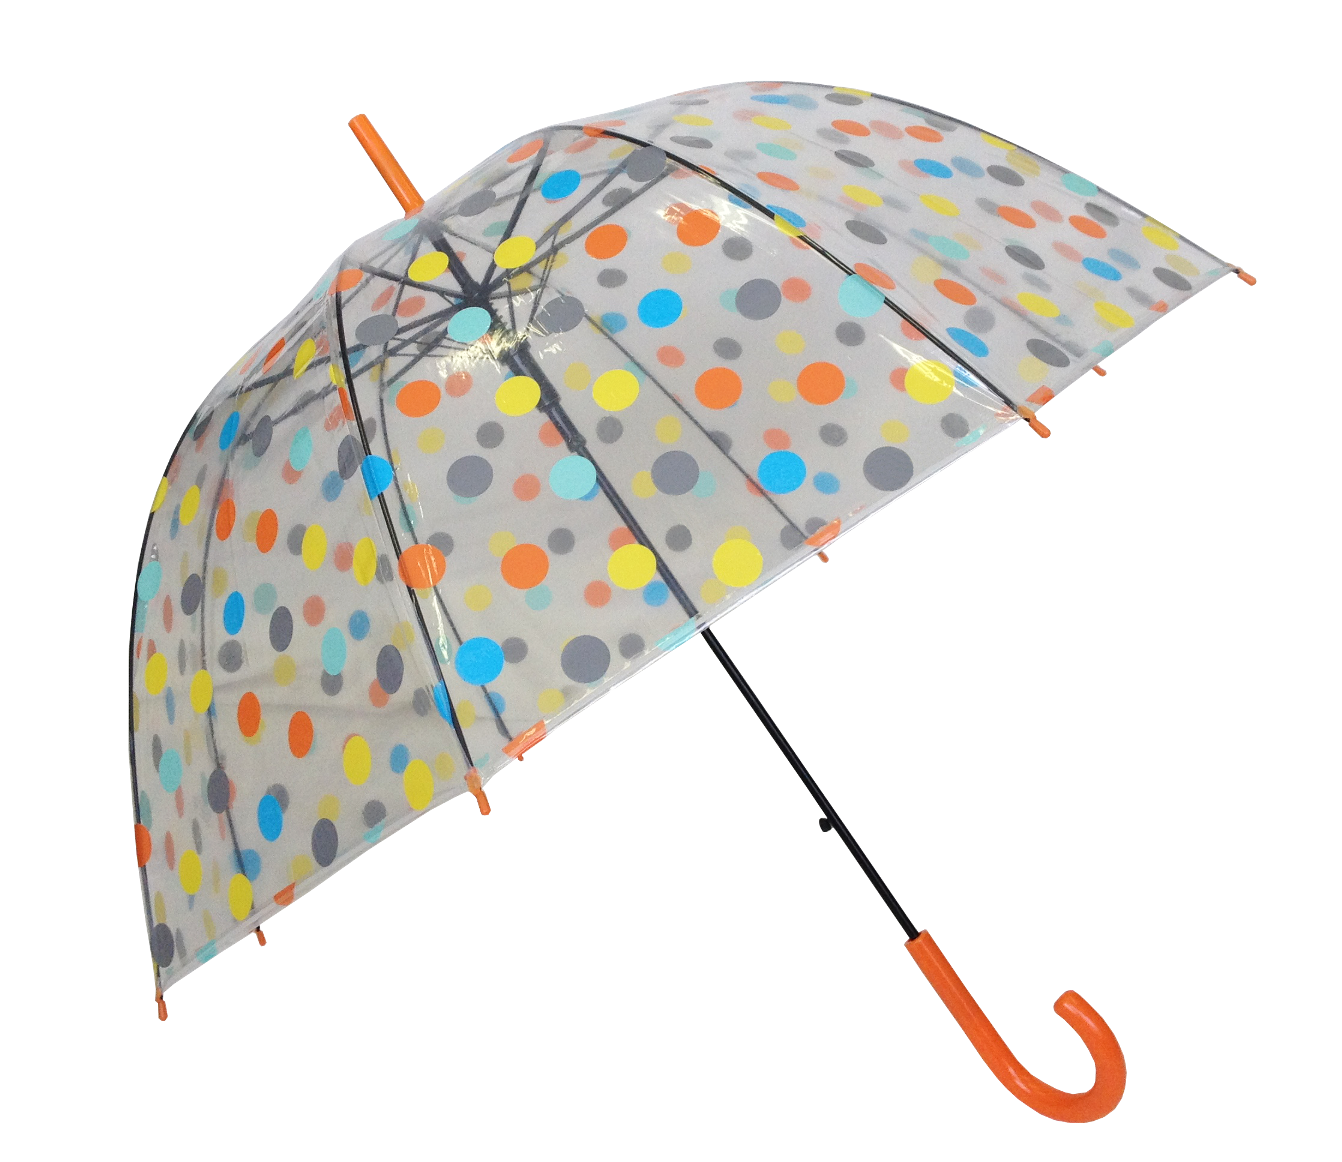 Parapluie transparent à pois multicolores